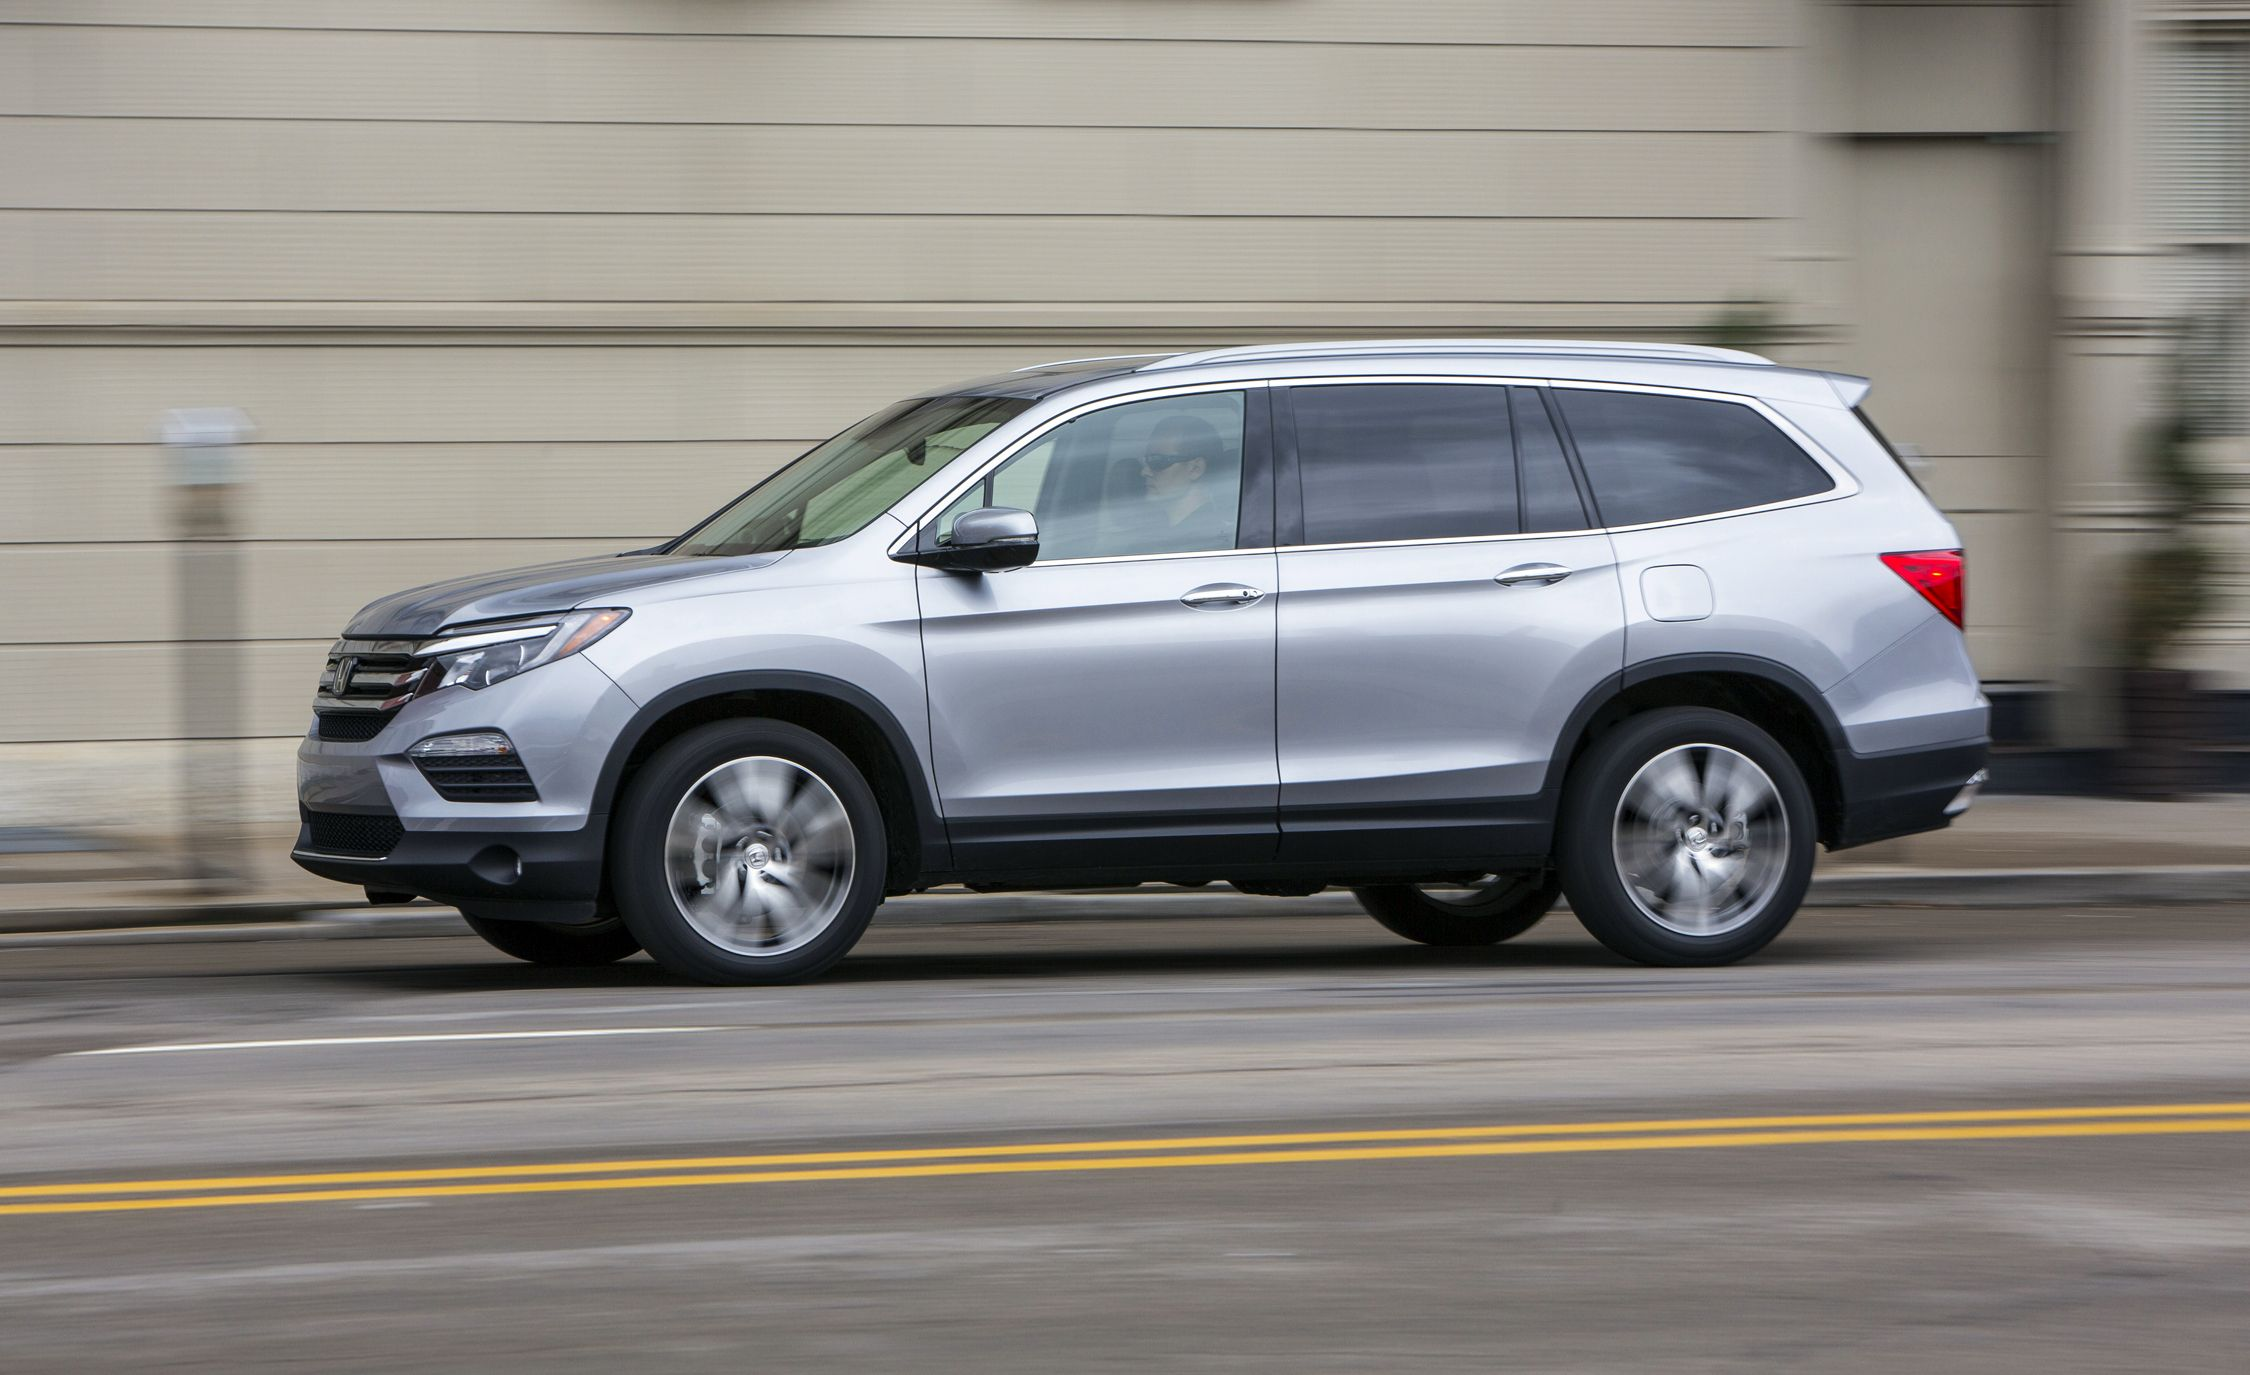 Honda Pilot Reviews Honda Pilot Price s and Specs